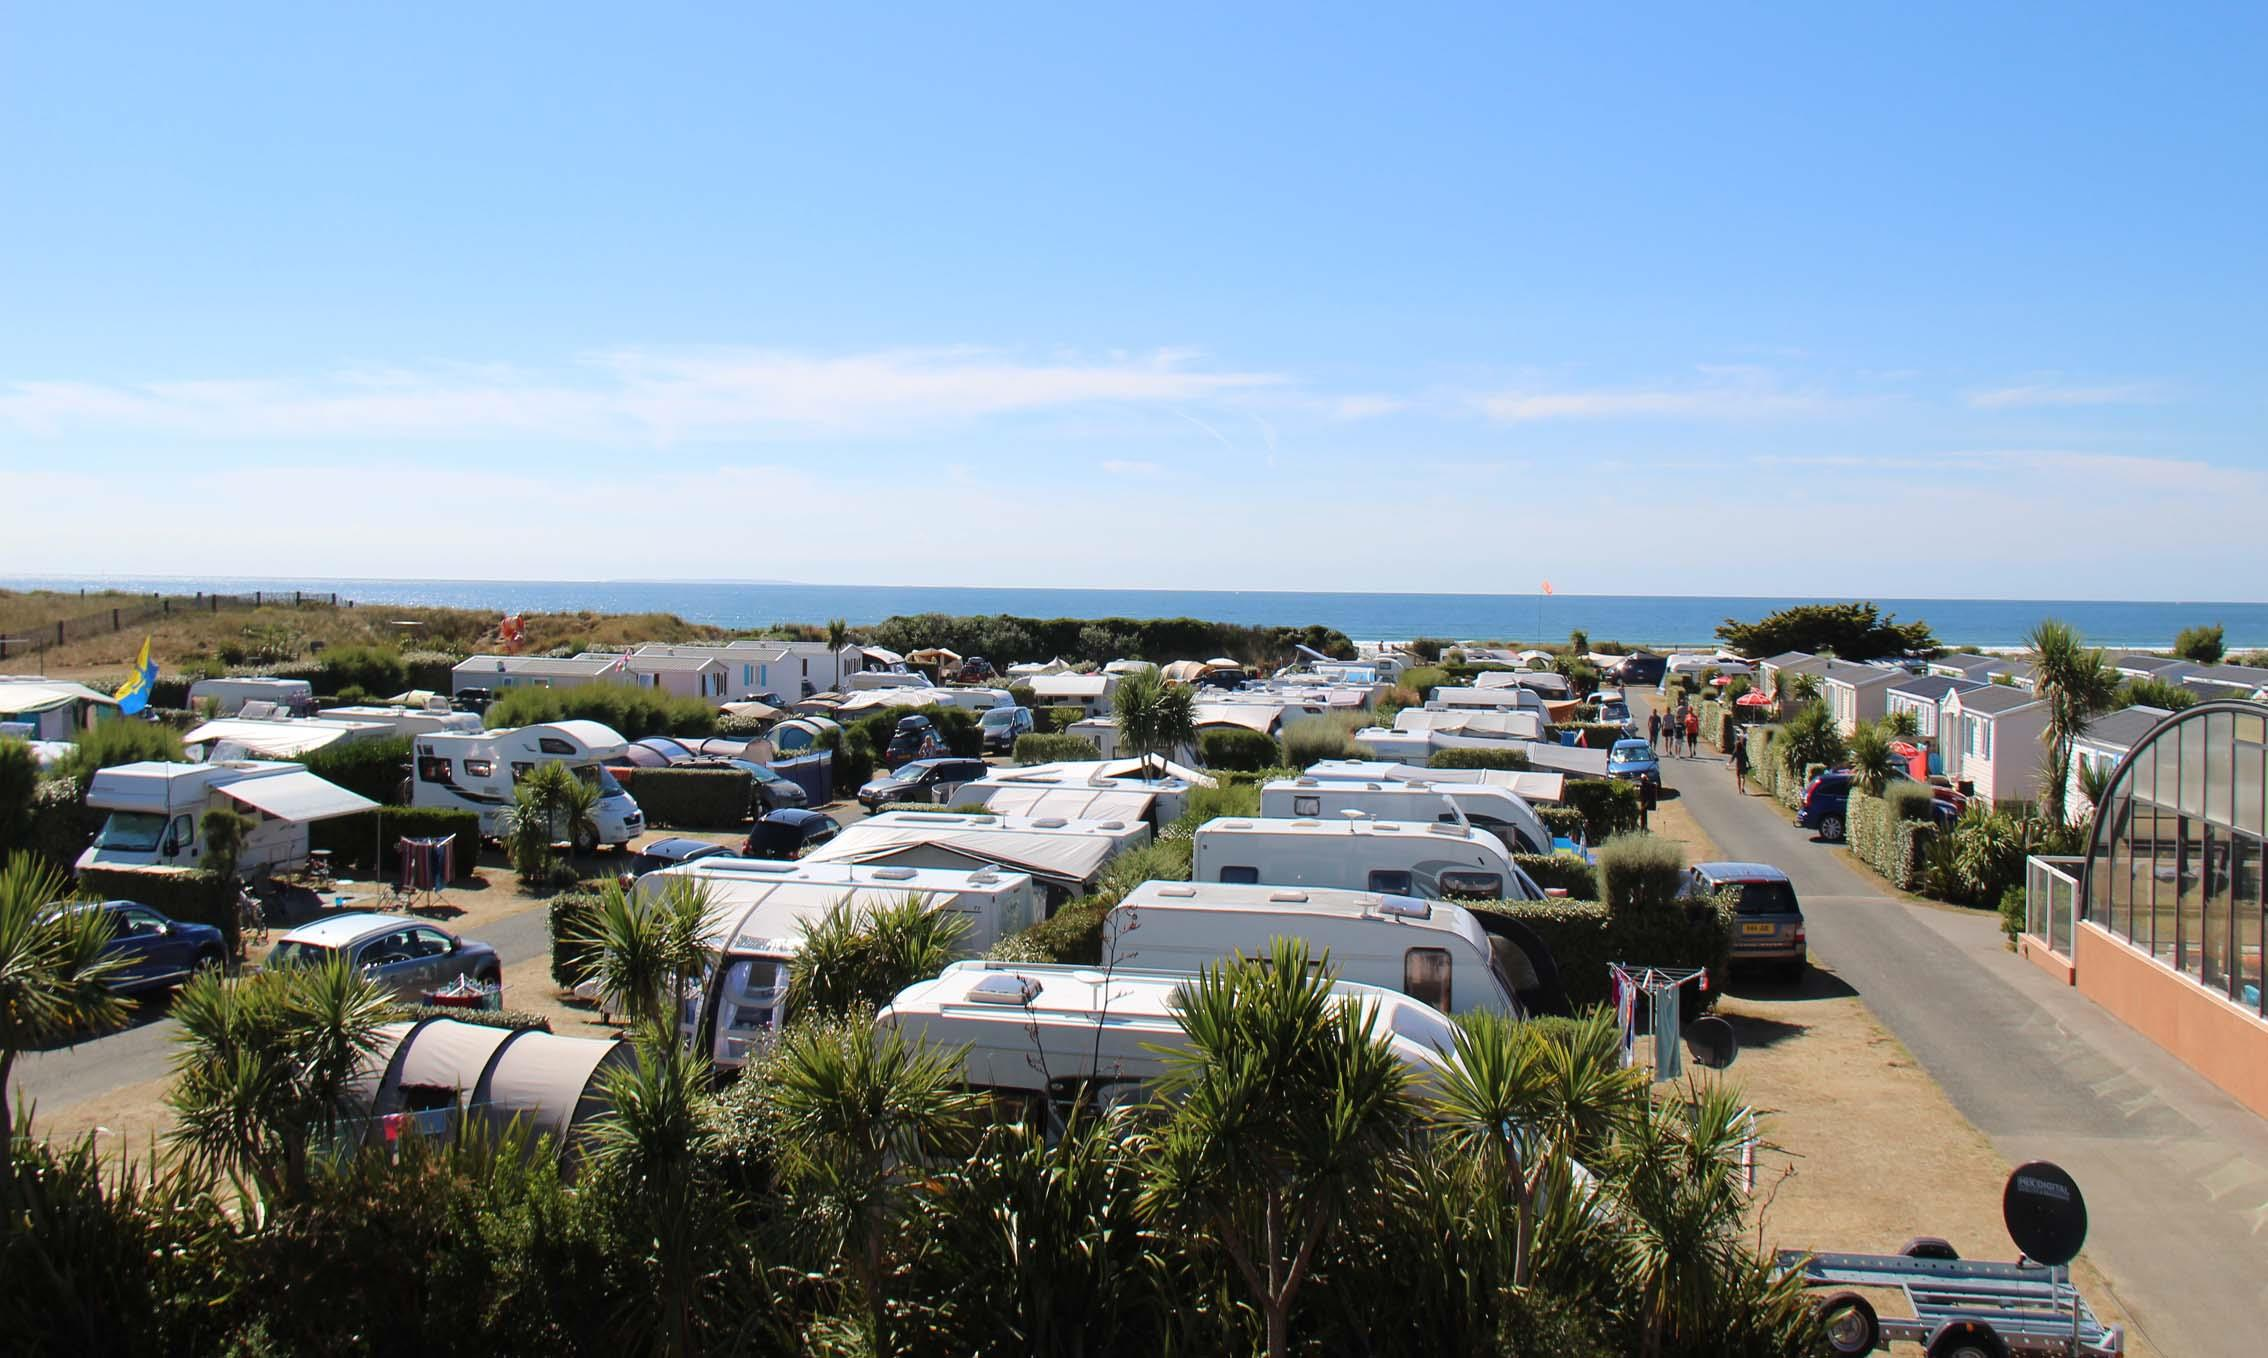 Emplacement - Emplacement - Camping Le Grand Large